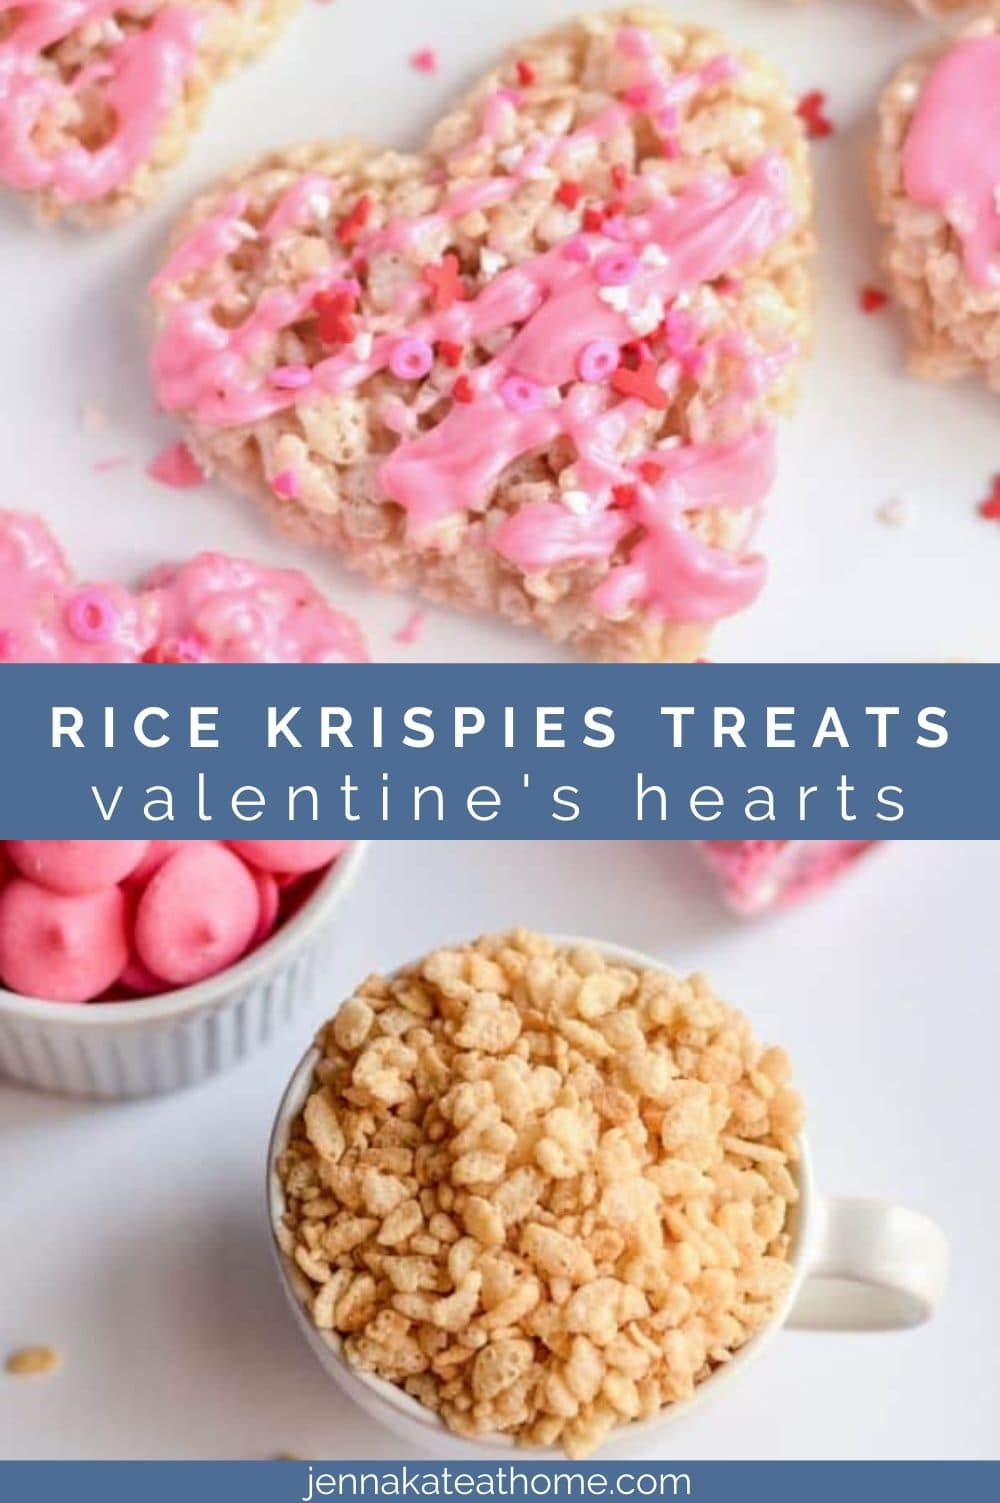 rice krispies treats for valentine's day